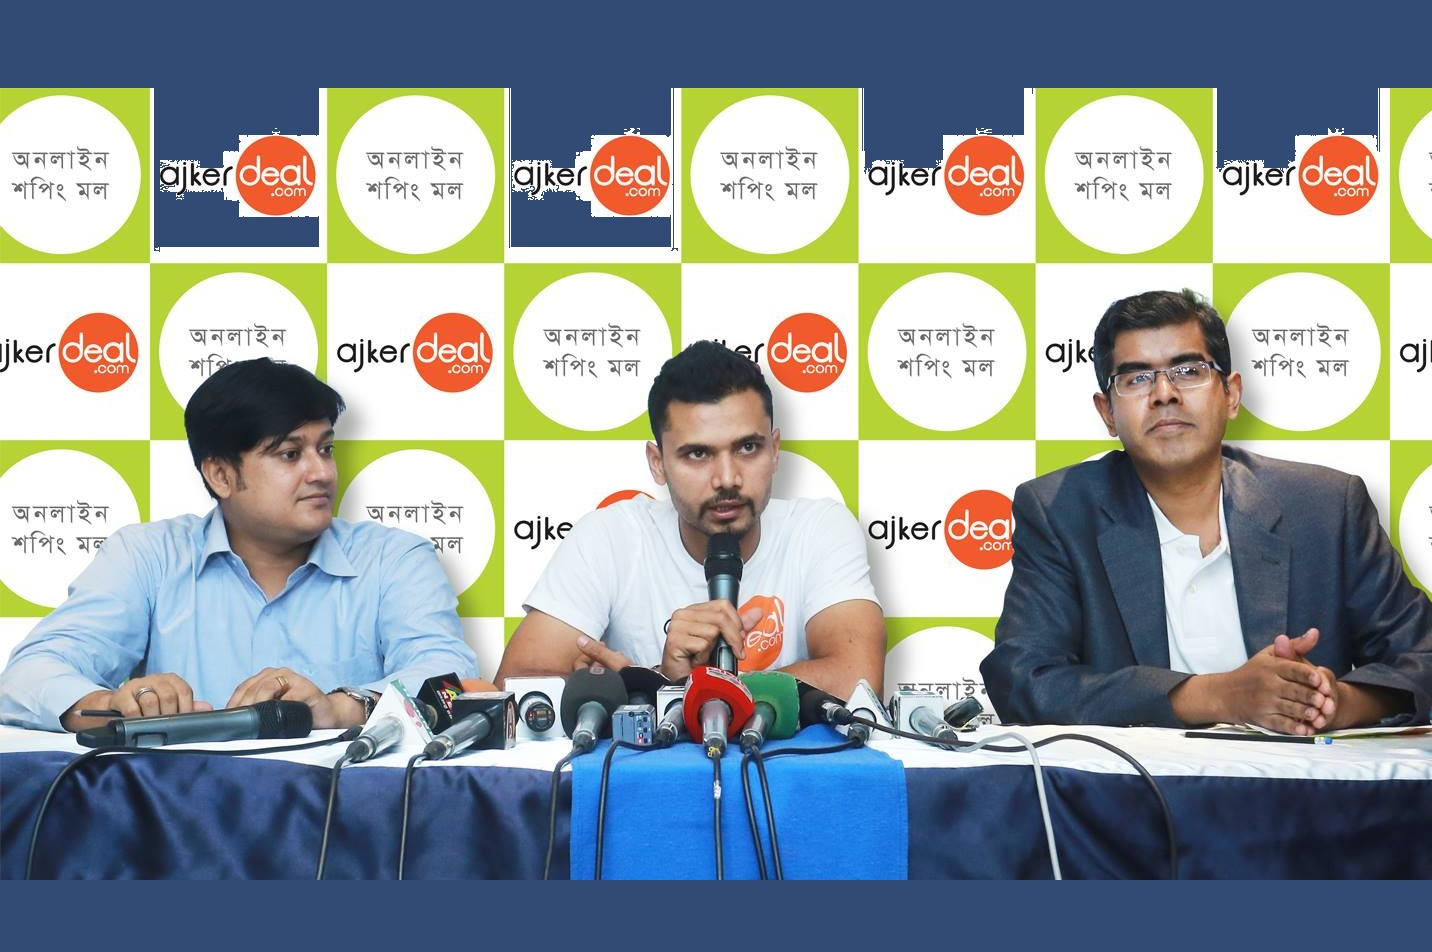 Mashrafe Bin Mortaza To Be The Brand Ambassador Of Ajkerdeal